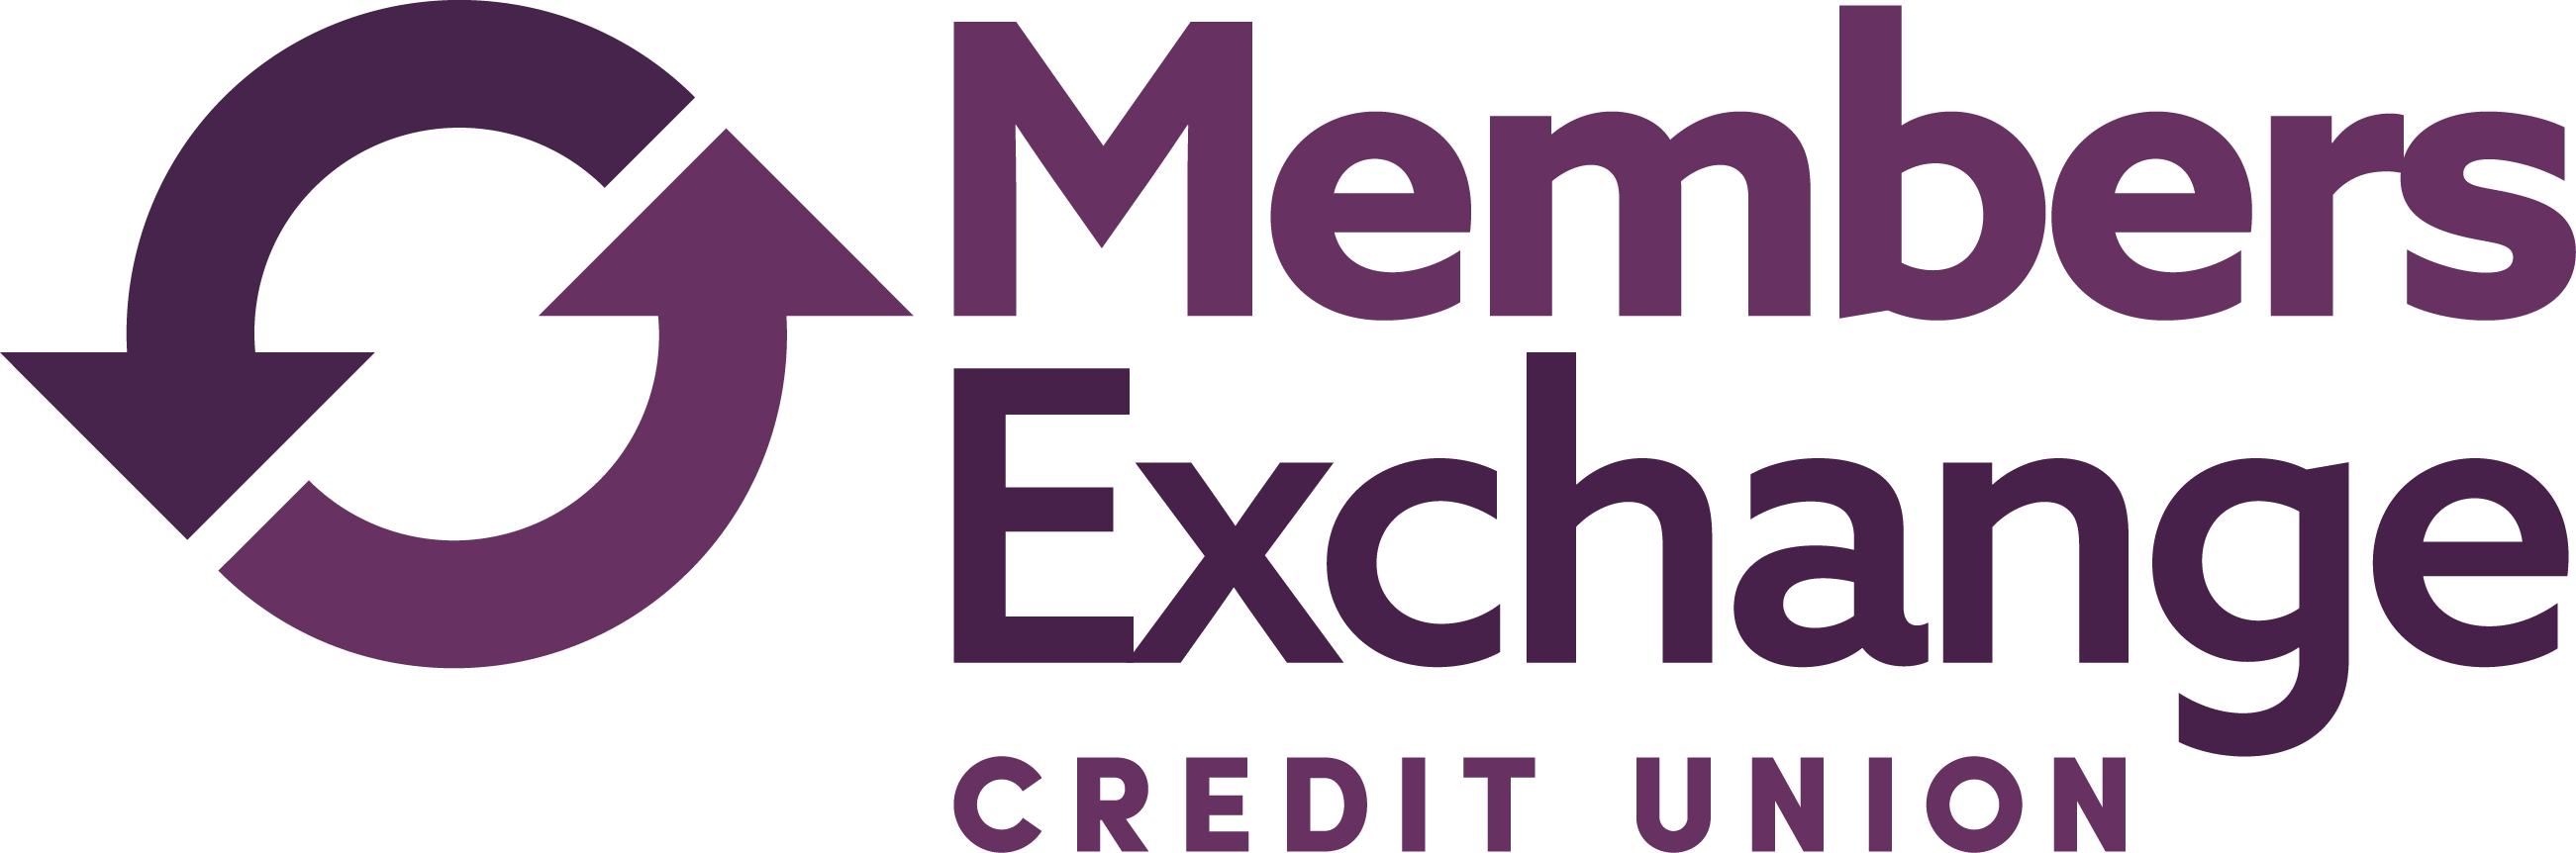 Members Exchange Credit Union